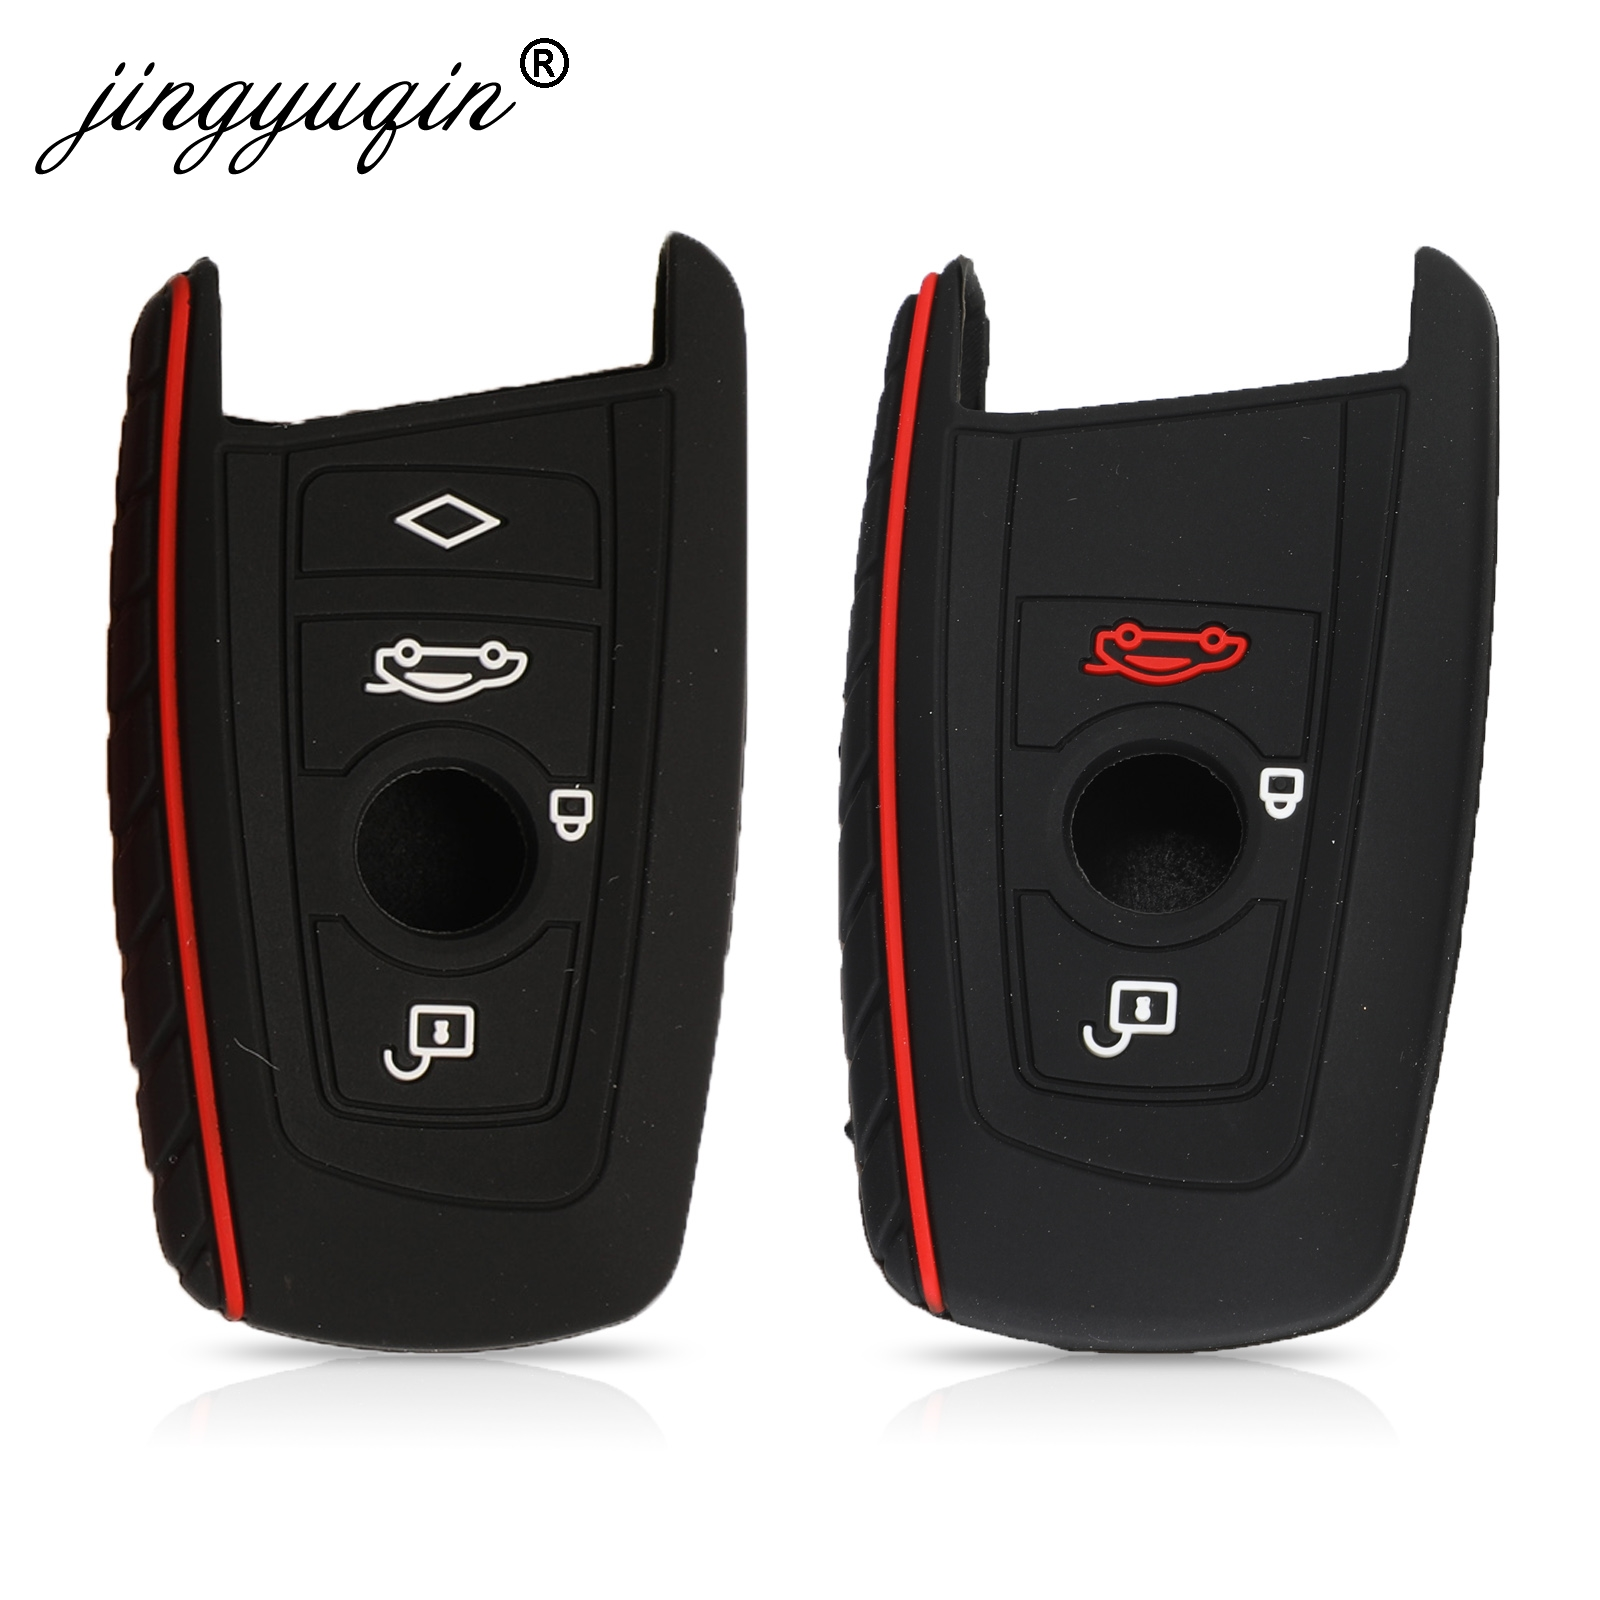 Silicone Key Fob Cover Case Protect Skin Hood For BMW F10 F20 F30 Z4 X1 X3 X4 M1 M2 M3 E90 1 2 3 5 7 SERIES 3/4 B Remote Keyless